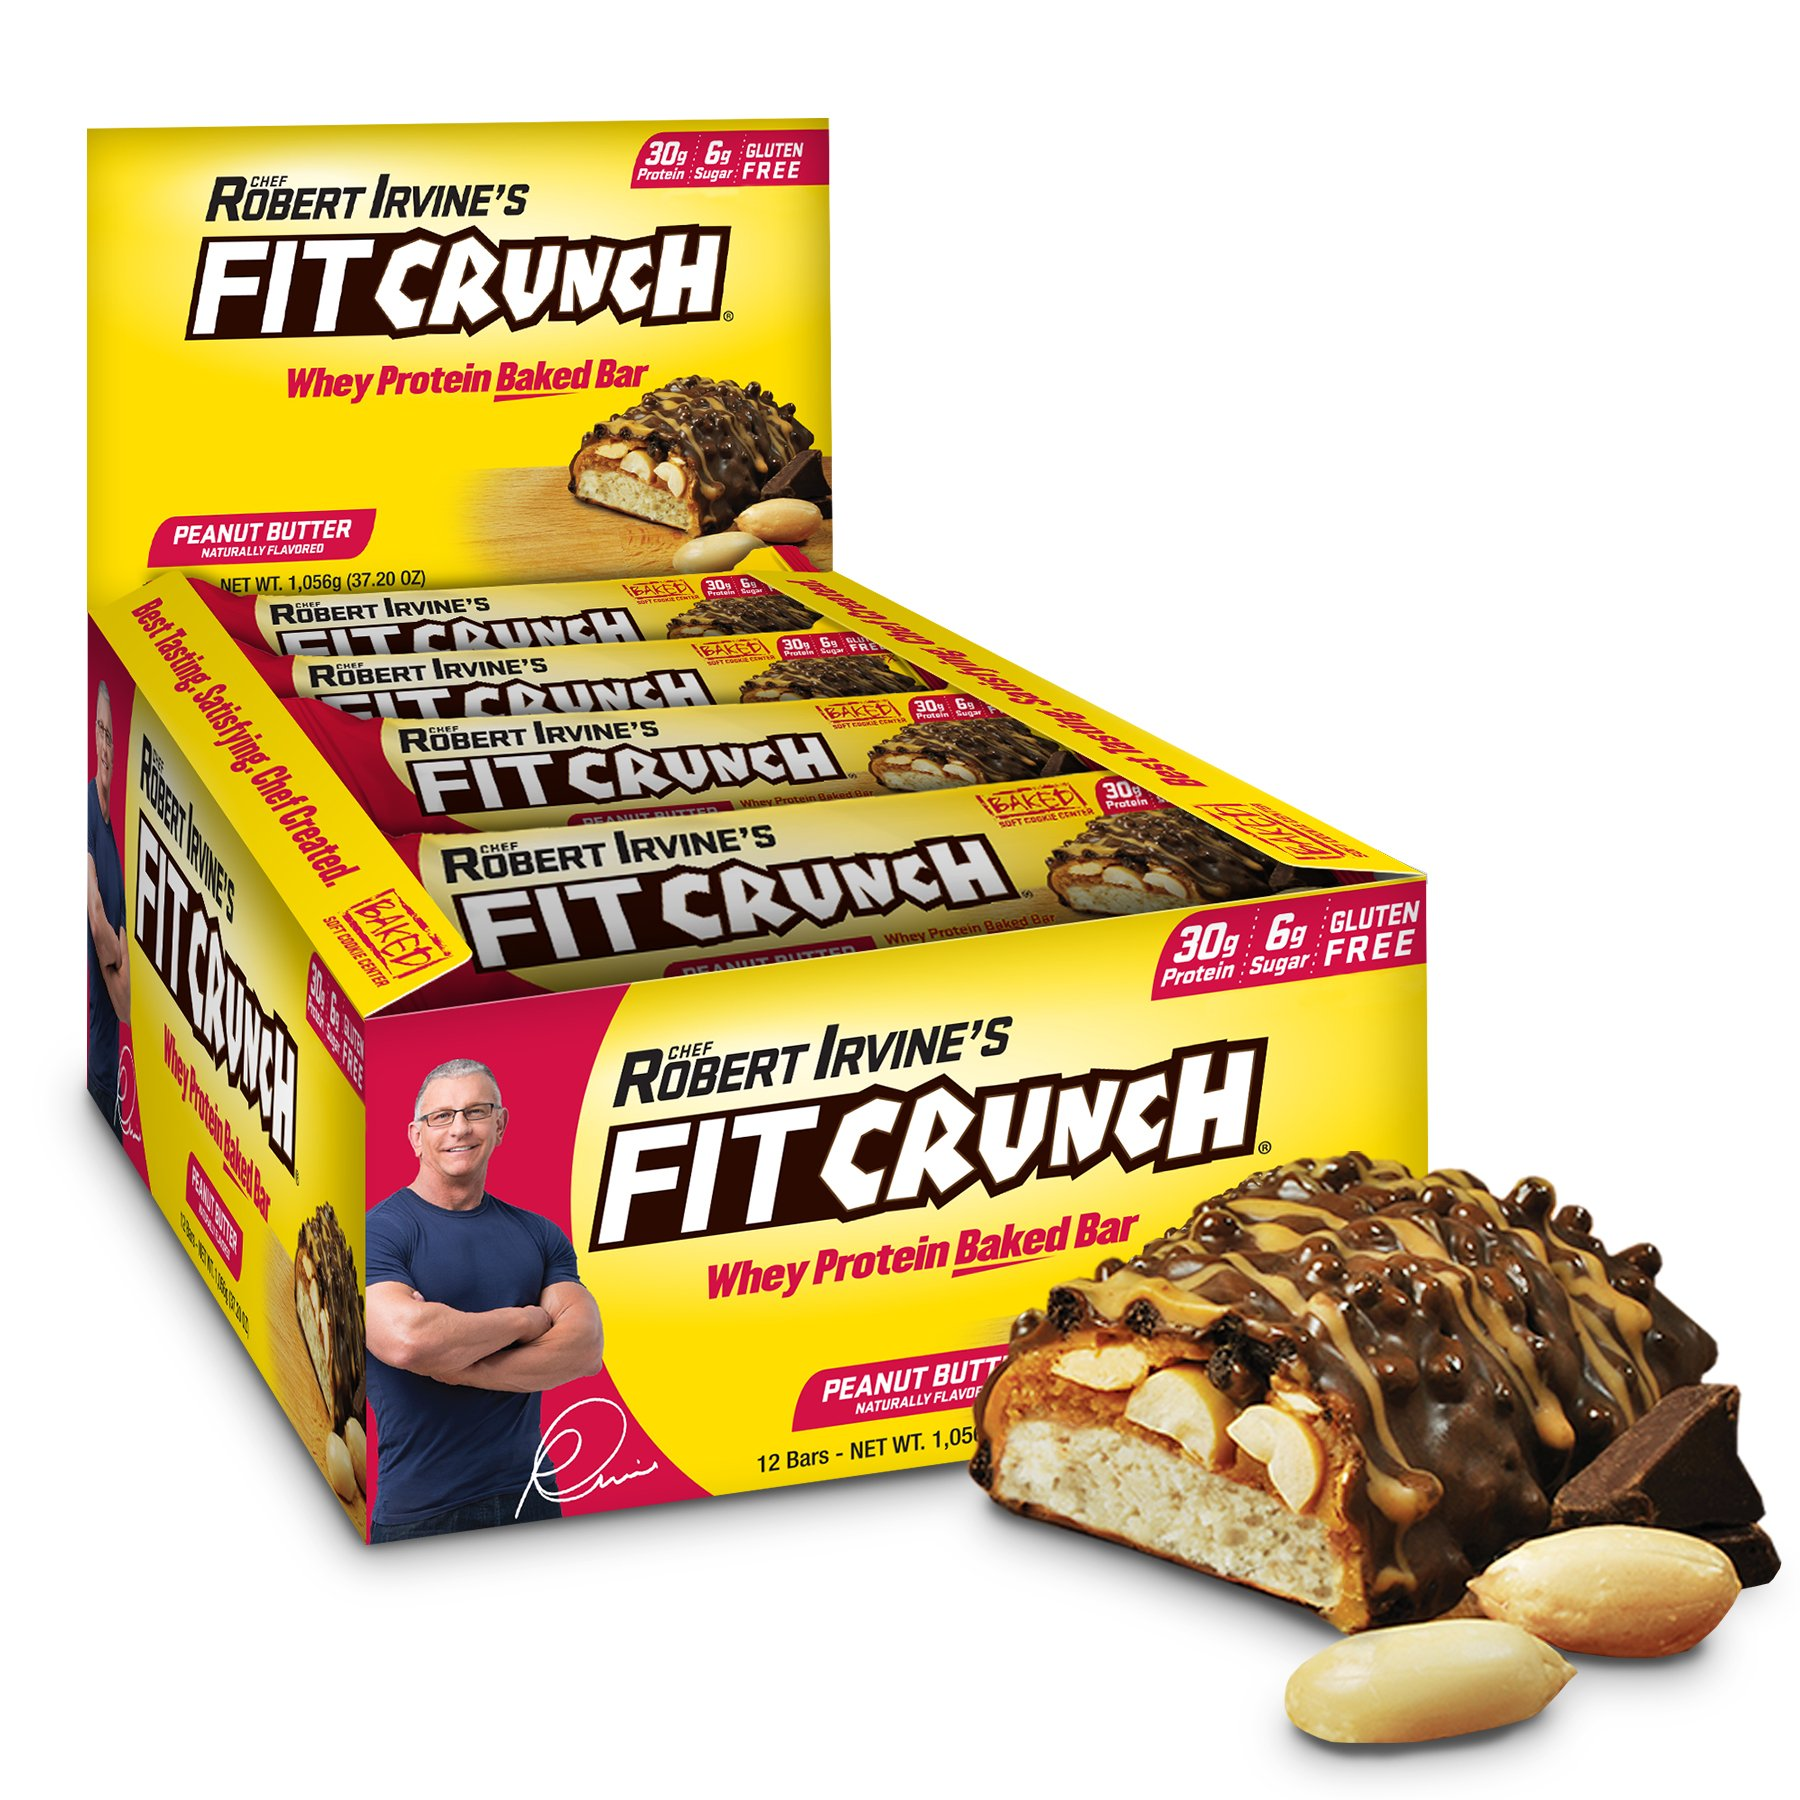 FITCRUNCH Protein Bars | Designed by Robert Irvine | World's Only 6-Layer Baked Bar | Just 6g of Sugar & Soft Cake Core (12 Bars, Peanut Butter) by Fit Crunch